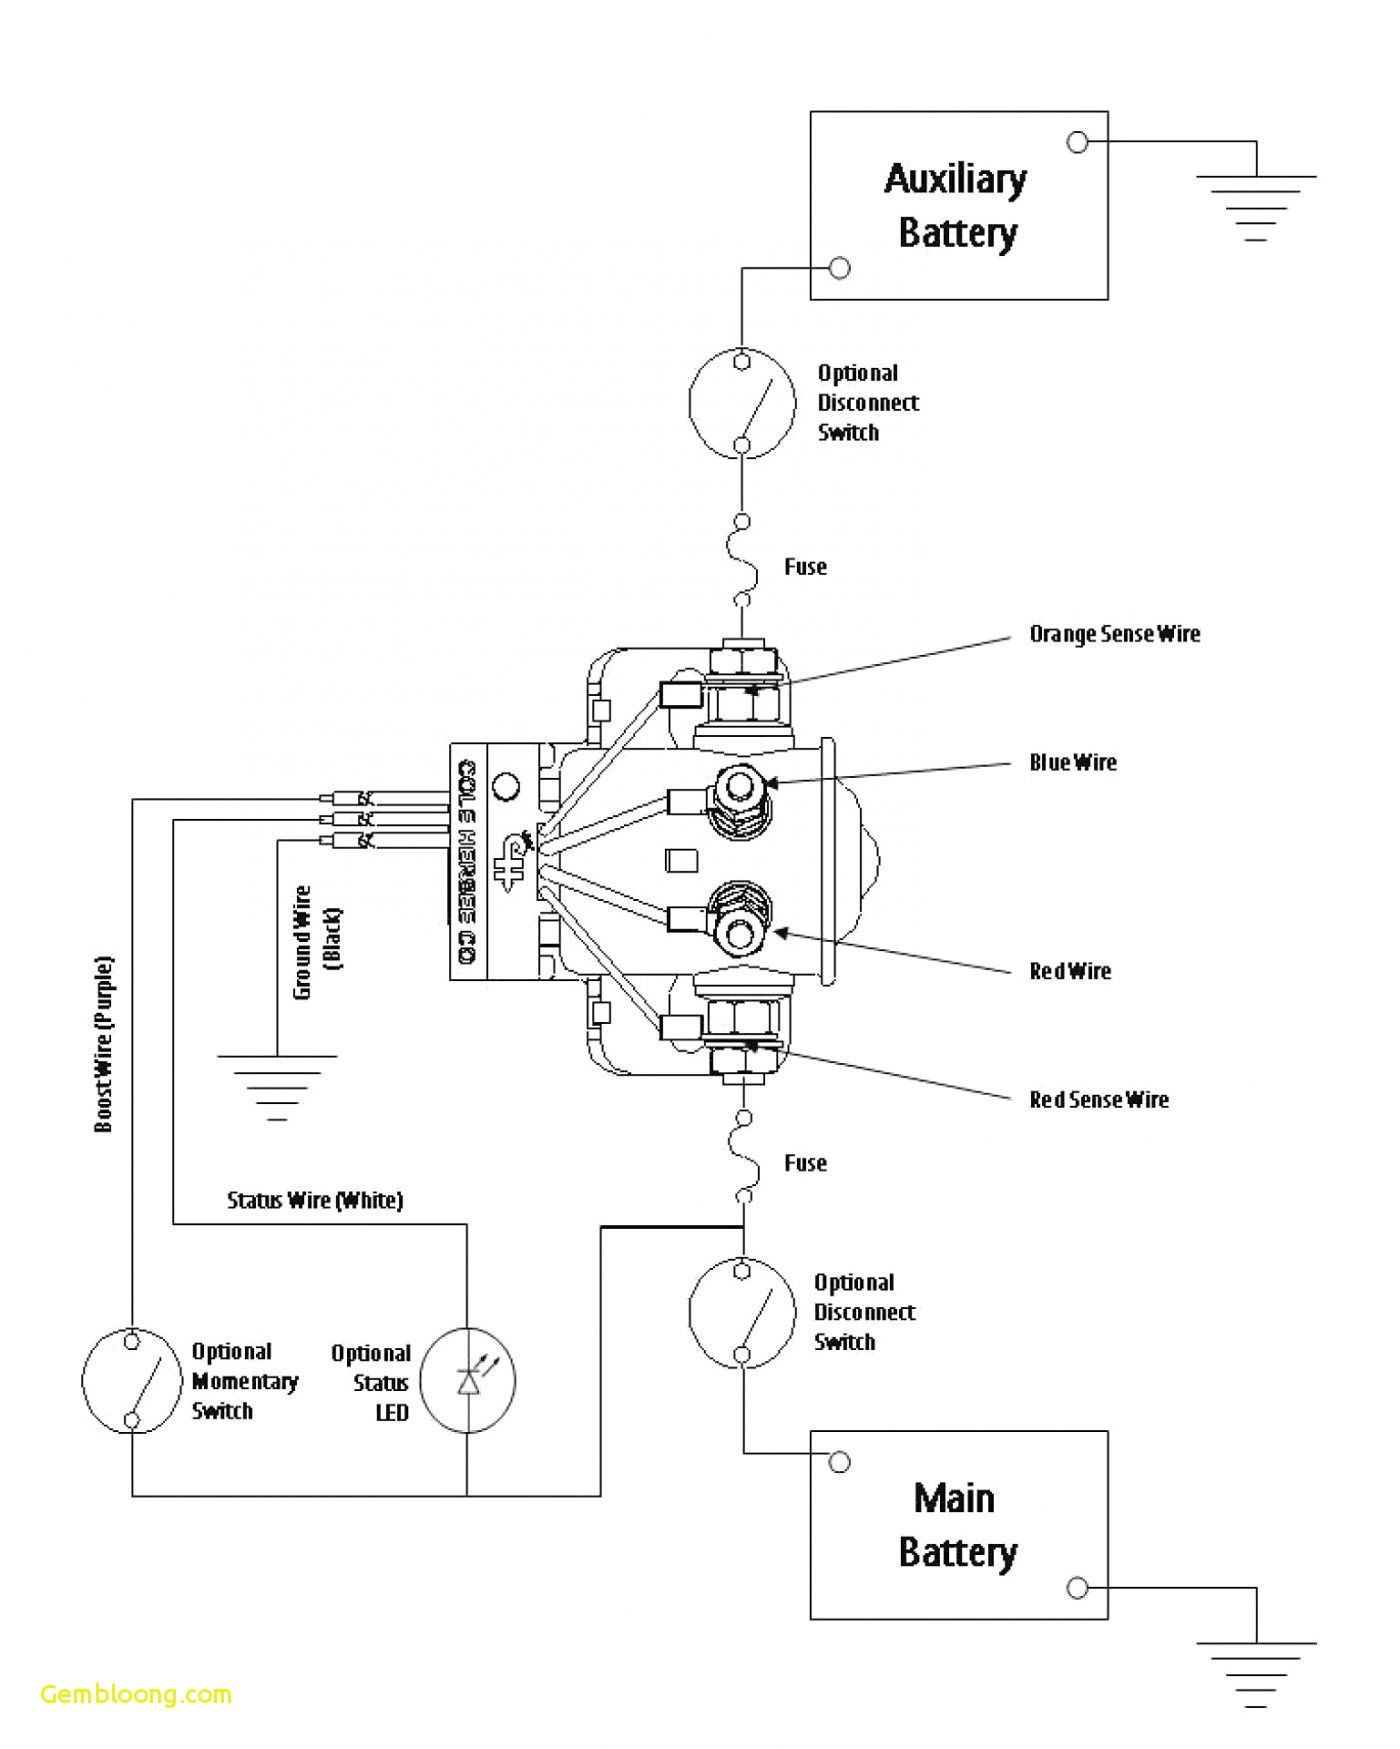 New Bmw E46 M43 Wiring Diagram Diagram Diagramtemplate Diagramsample Baldor